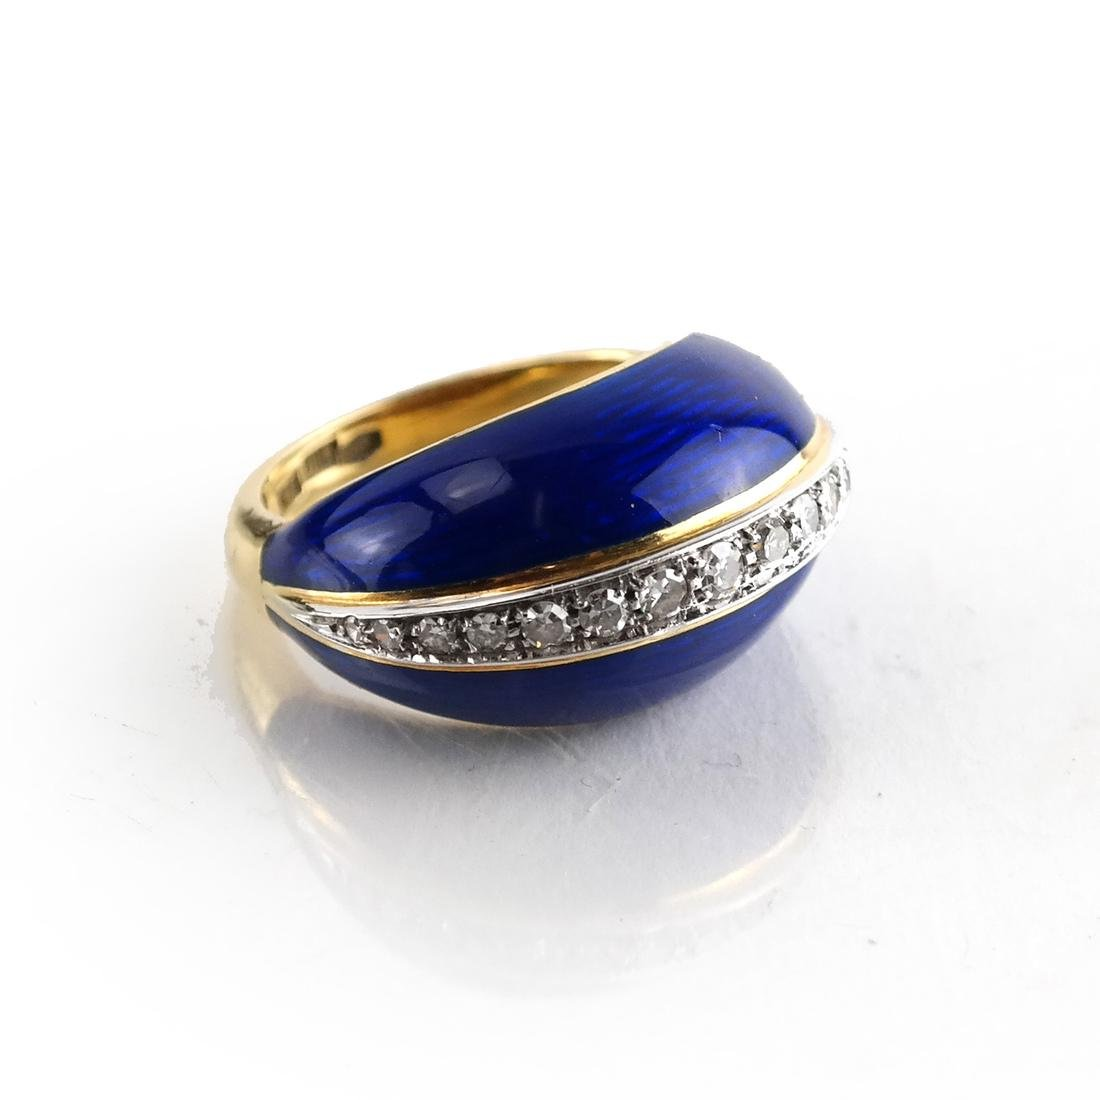 Italian YG Diamond, Lapis, Enamel Ring